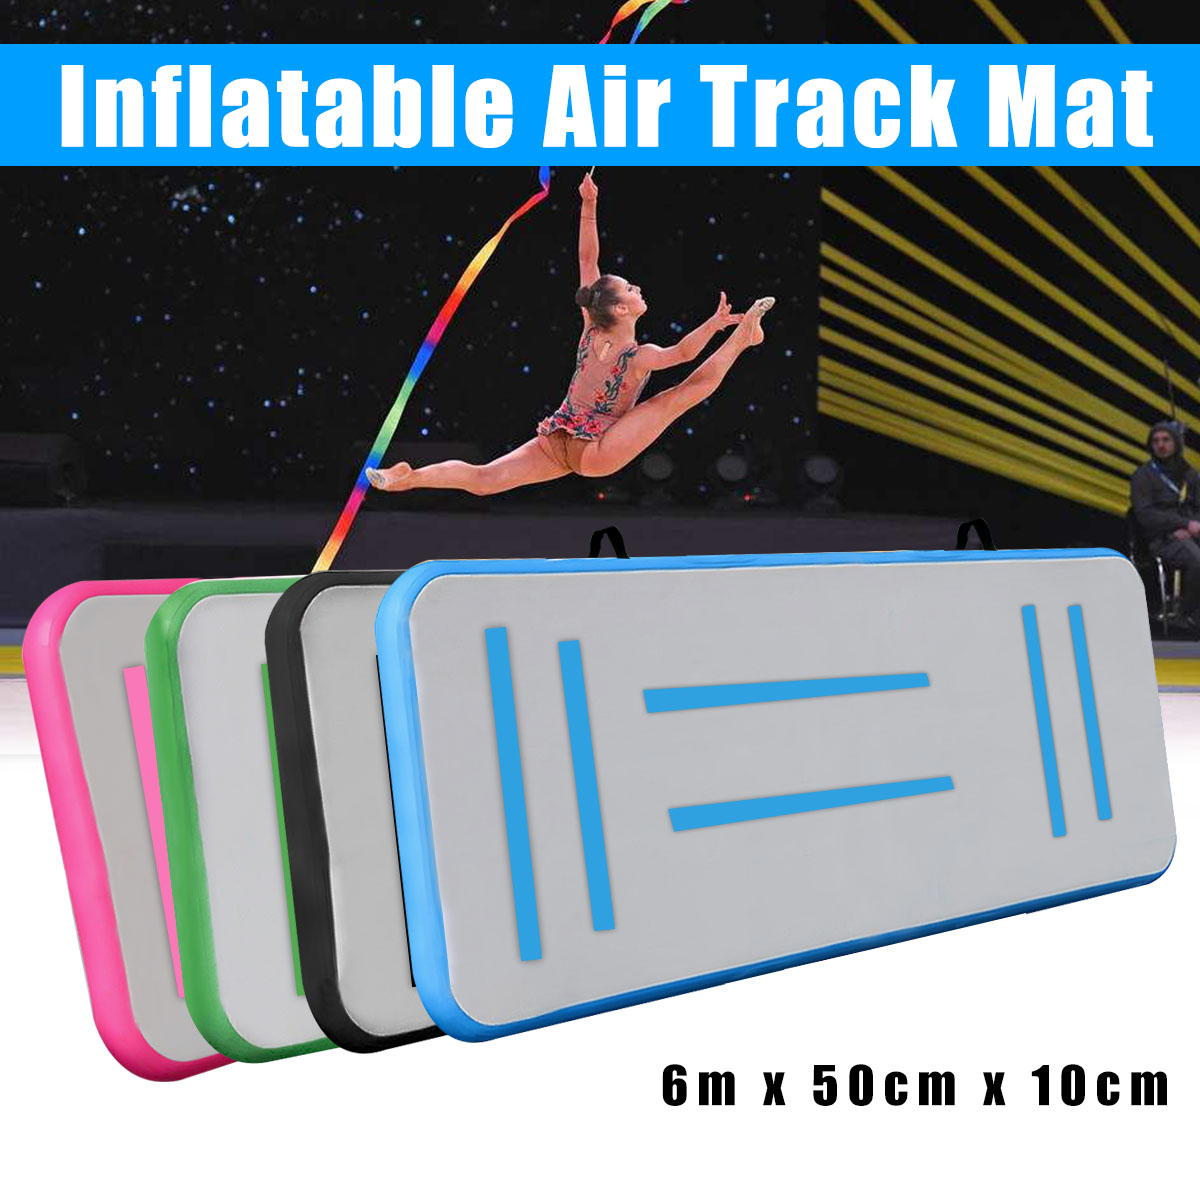 118x19.6x3.9inch Inflatable Air Track Tumbling Floor Gymnastics Mat Practice Training Pad